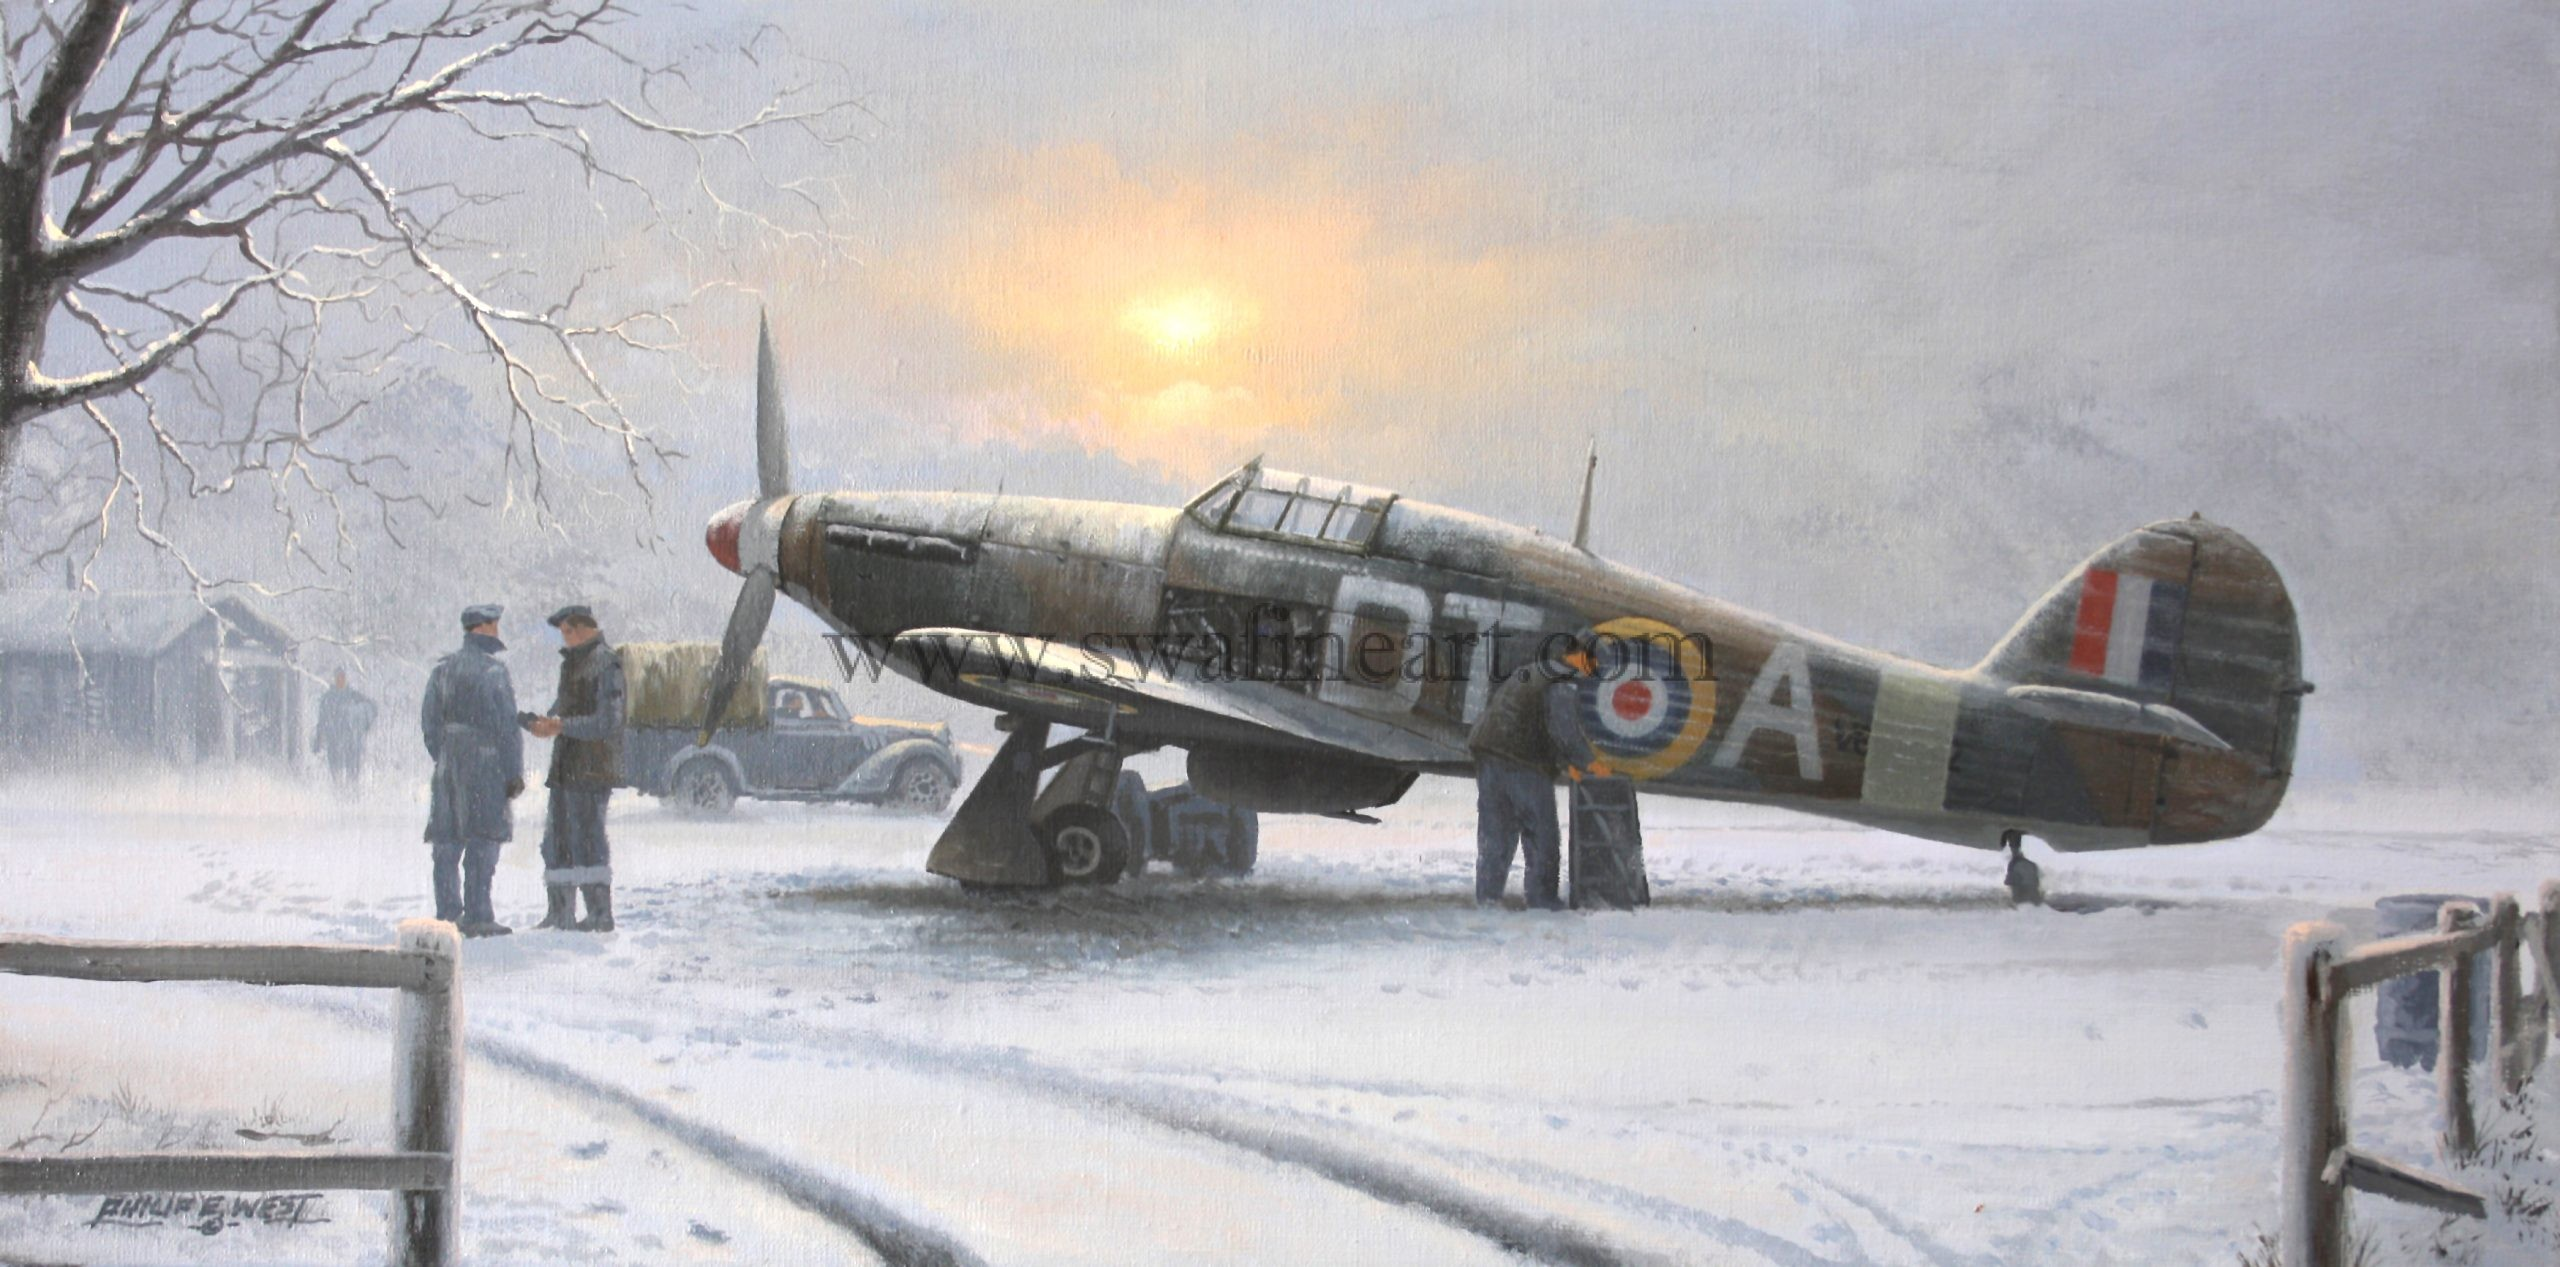 Raf Christmas Cards 2020 Hawker Hurricane Winter of 40 Christmas cards 257 Squadron RAF